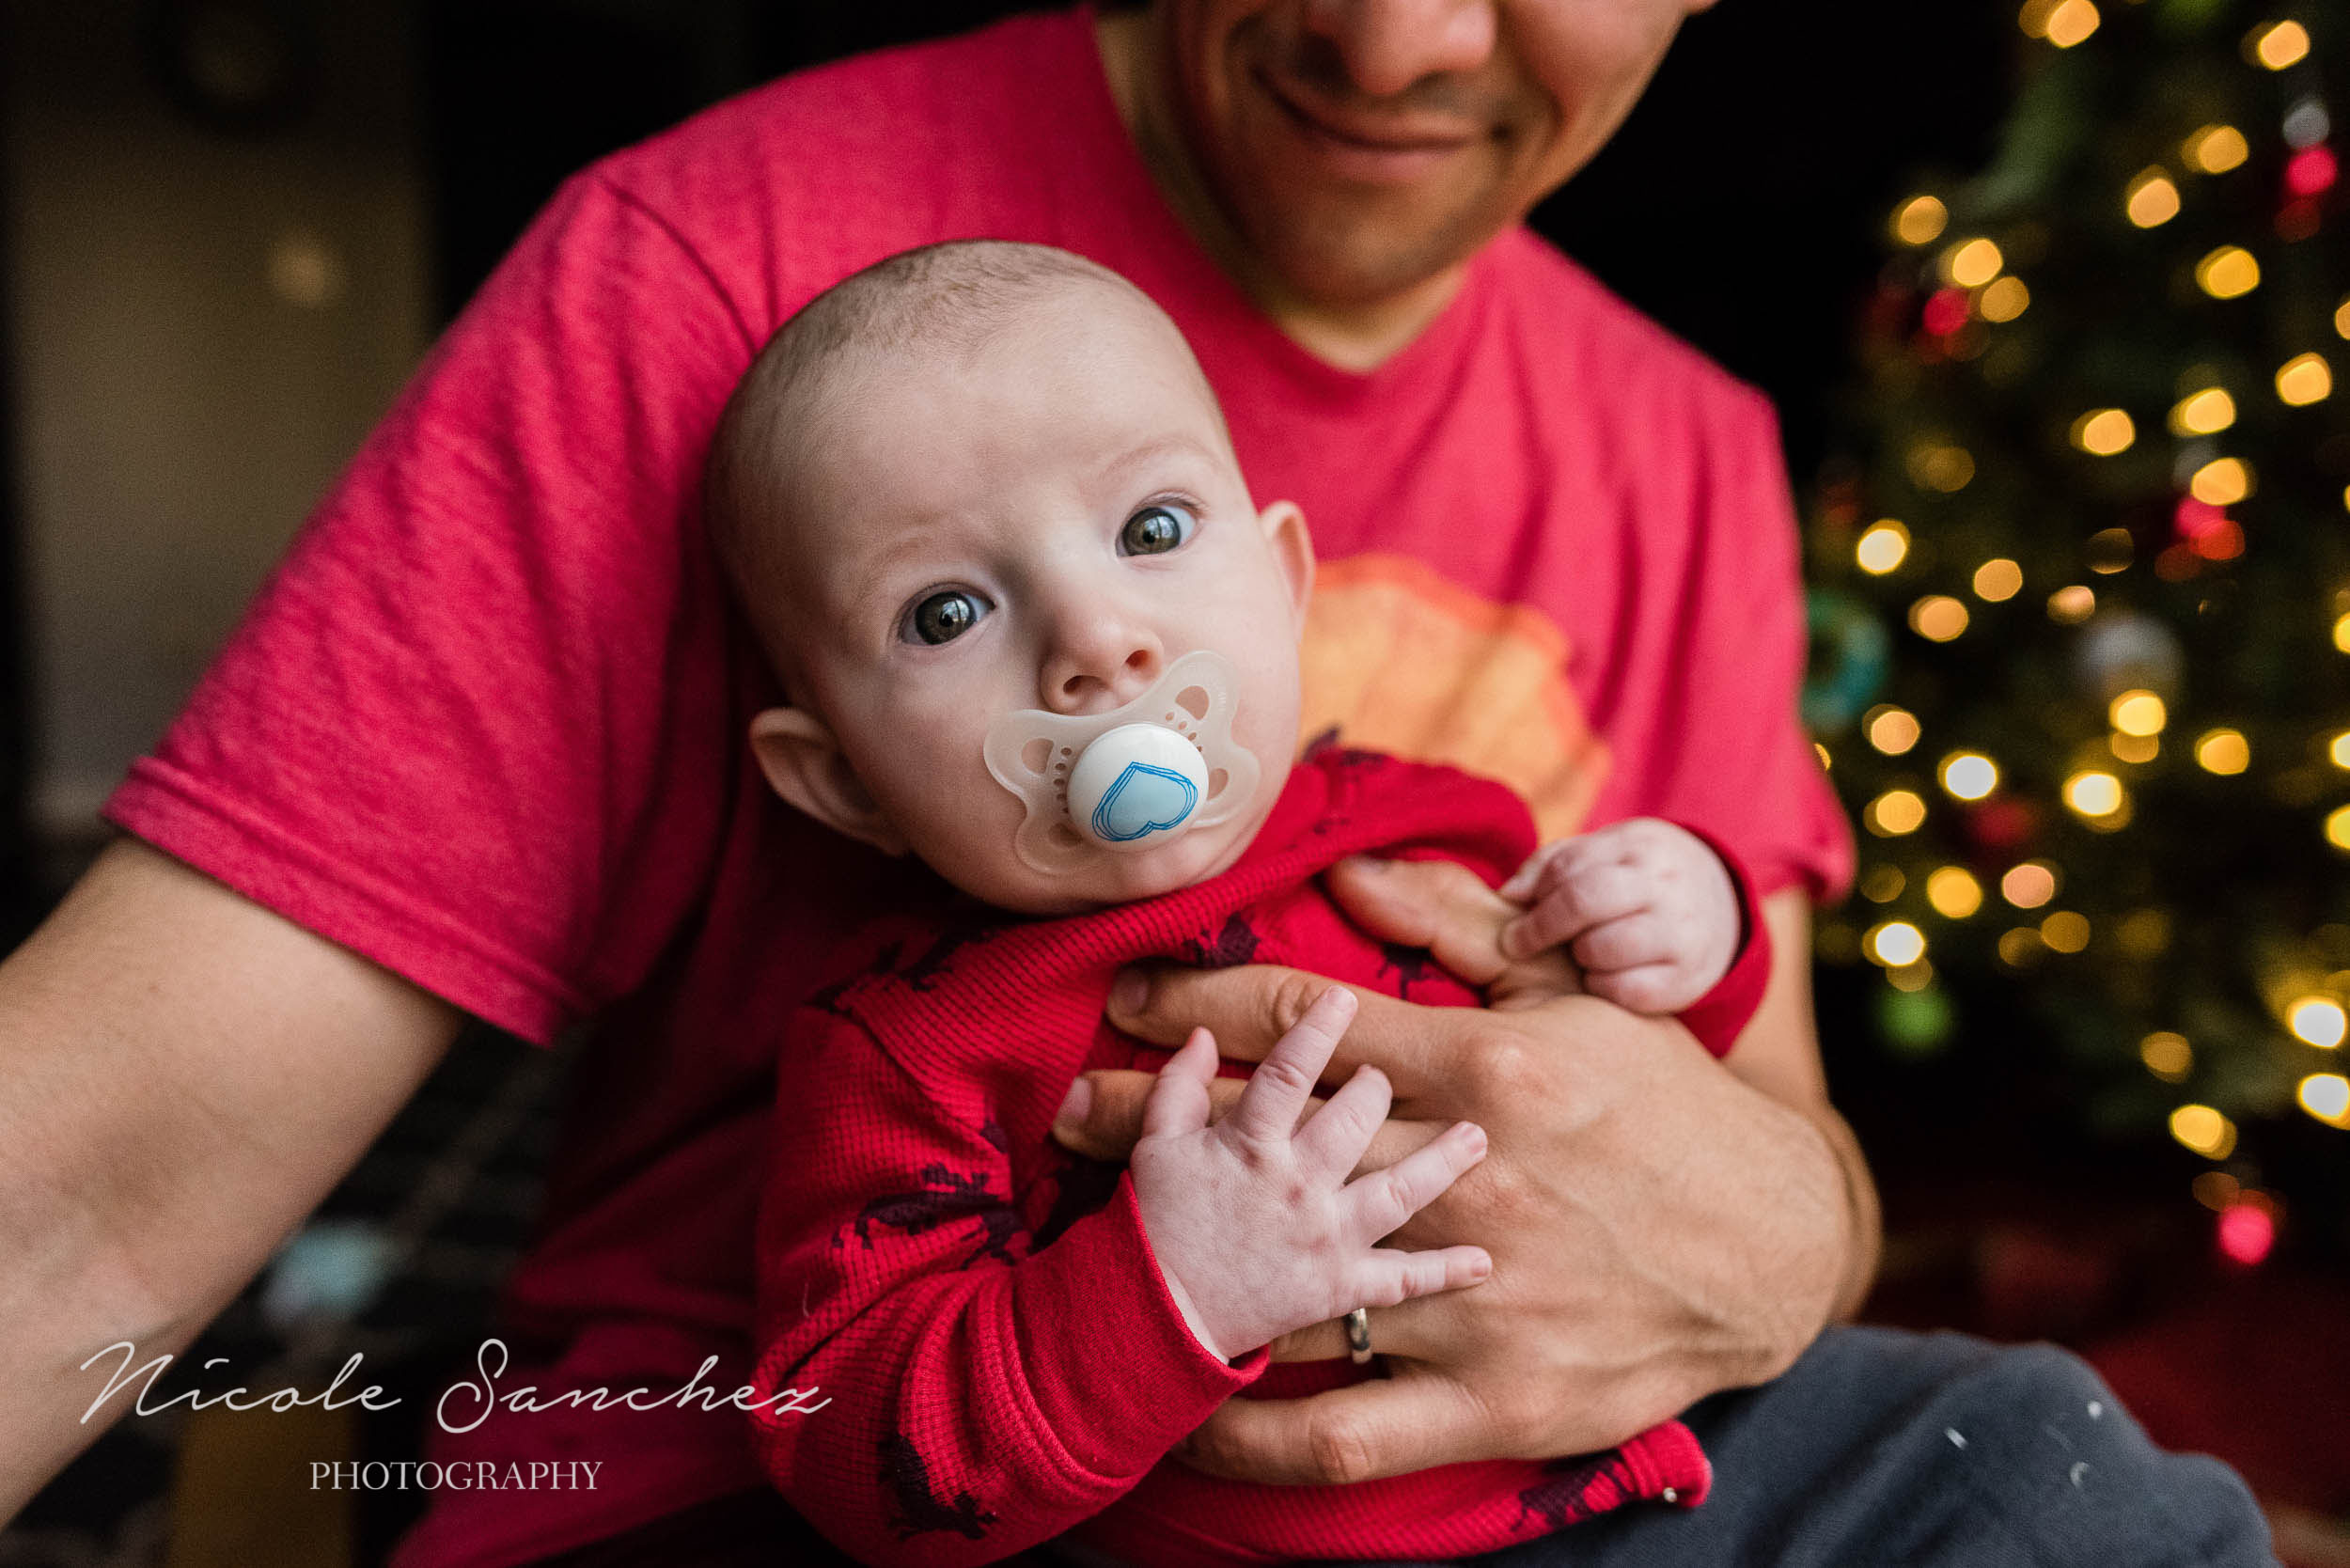 photographing-holiday-traditions-nicole-sanchez-northern-virginia-family-photographer-1.jpg